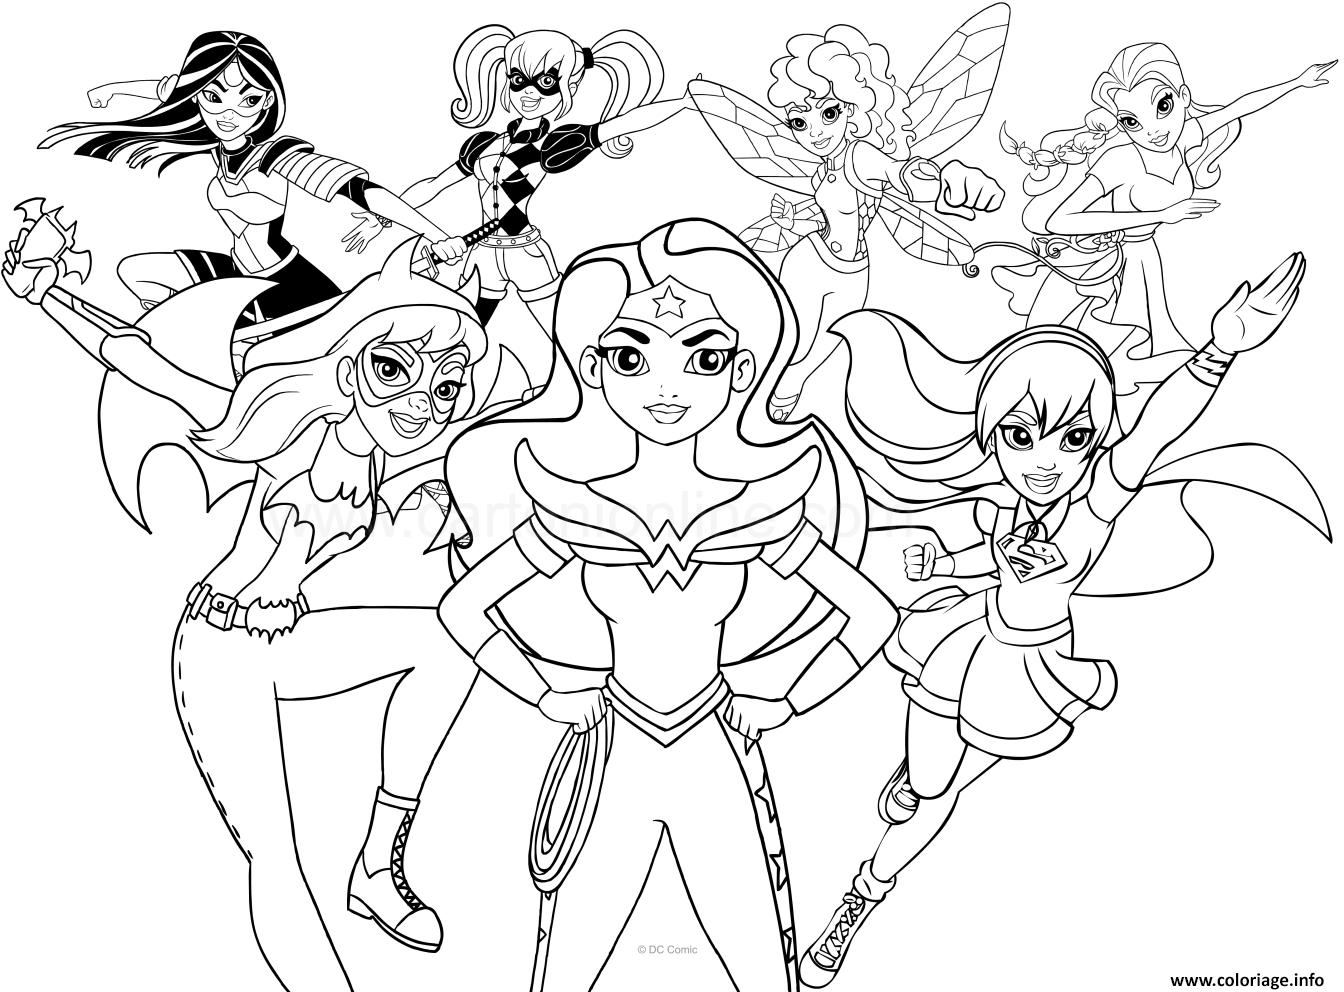 Ausmalbilder Marvel Superhelden: Coloriage Dc Superhero Girls Dessin